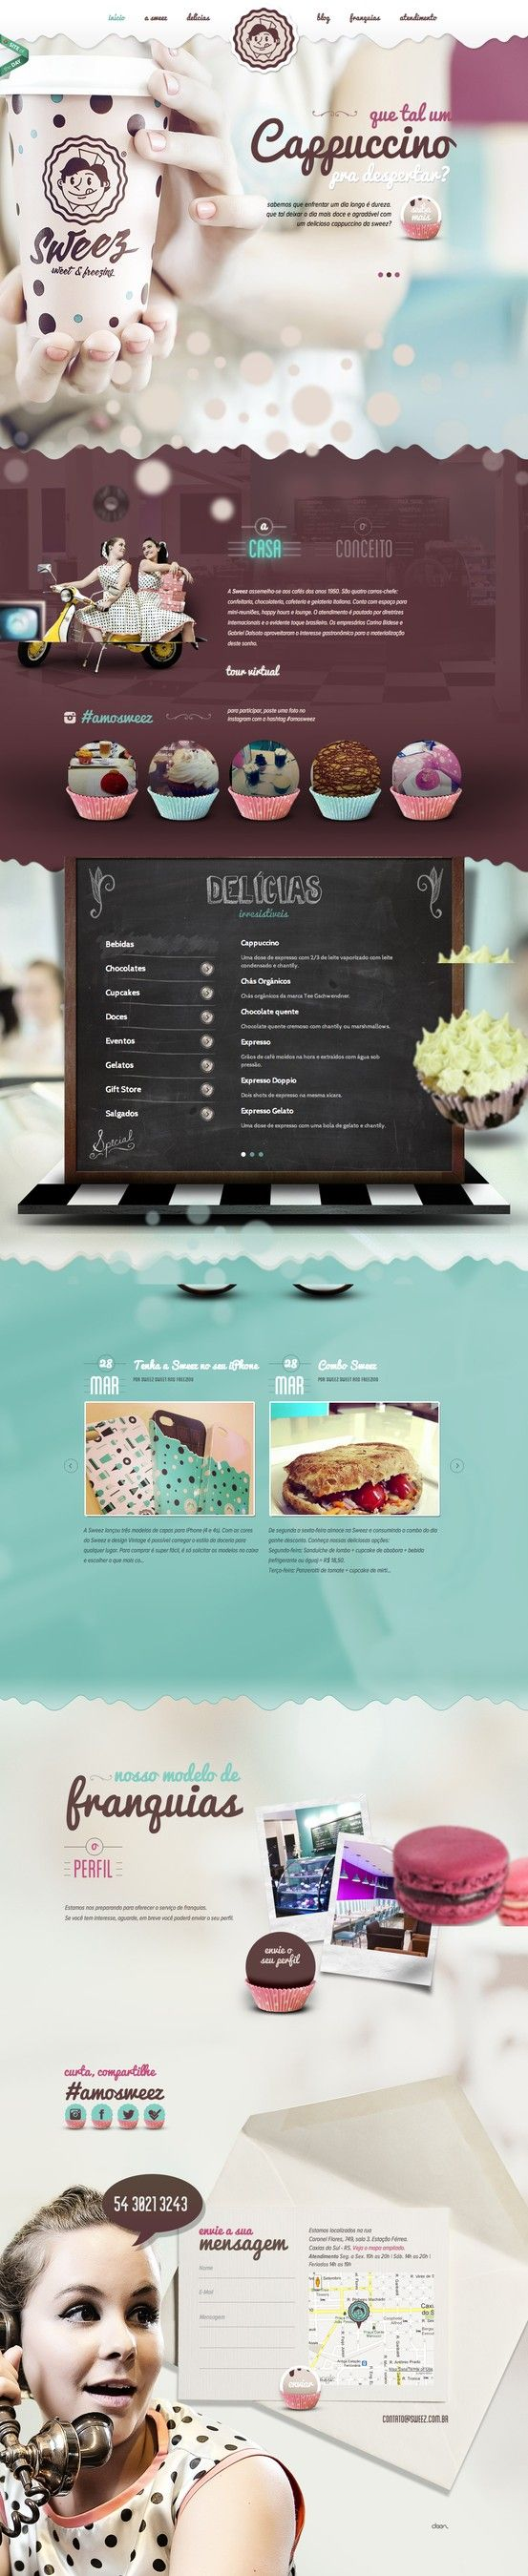 #web #design #layout #userinterface #website #webdesign